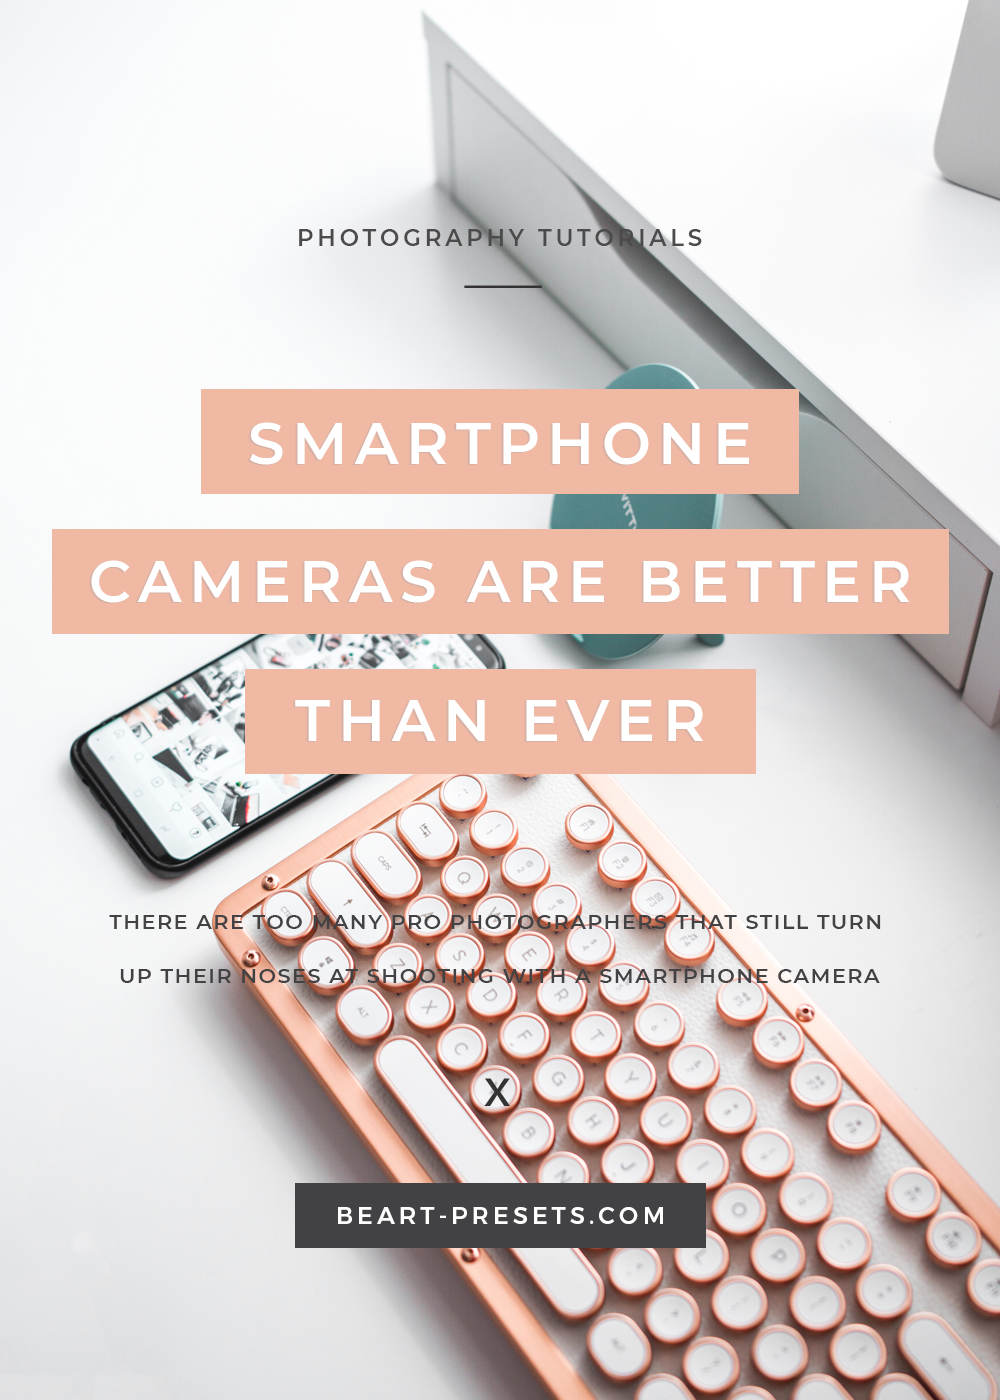 SMARTPHONE CAMERAS ARE BETTER THAN EVER